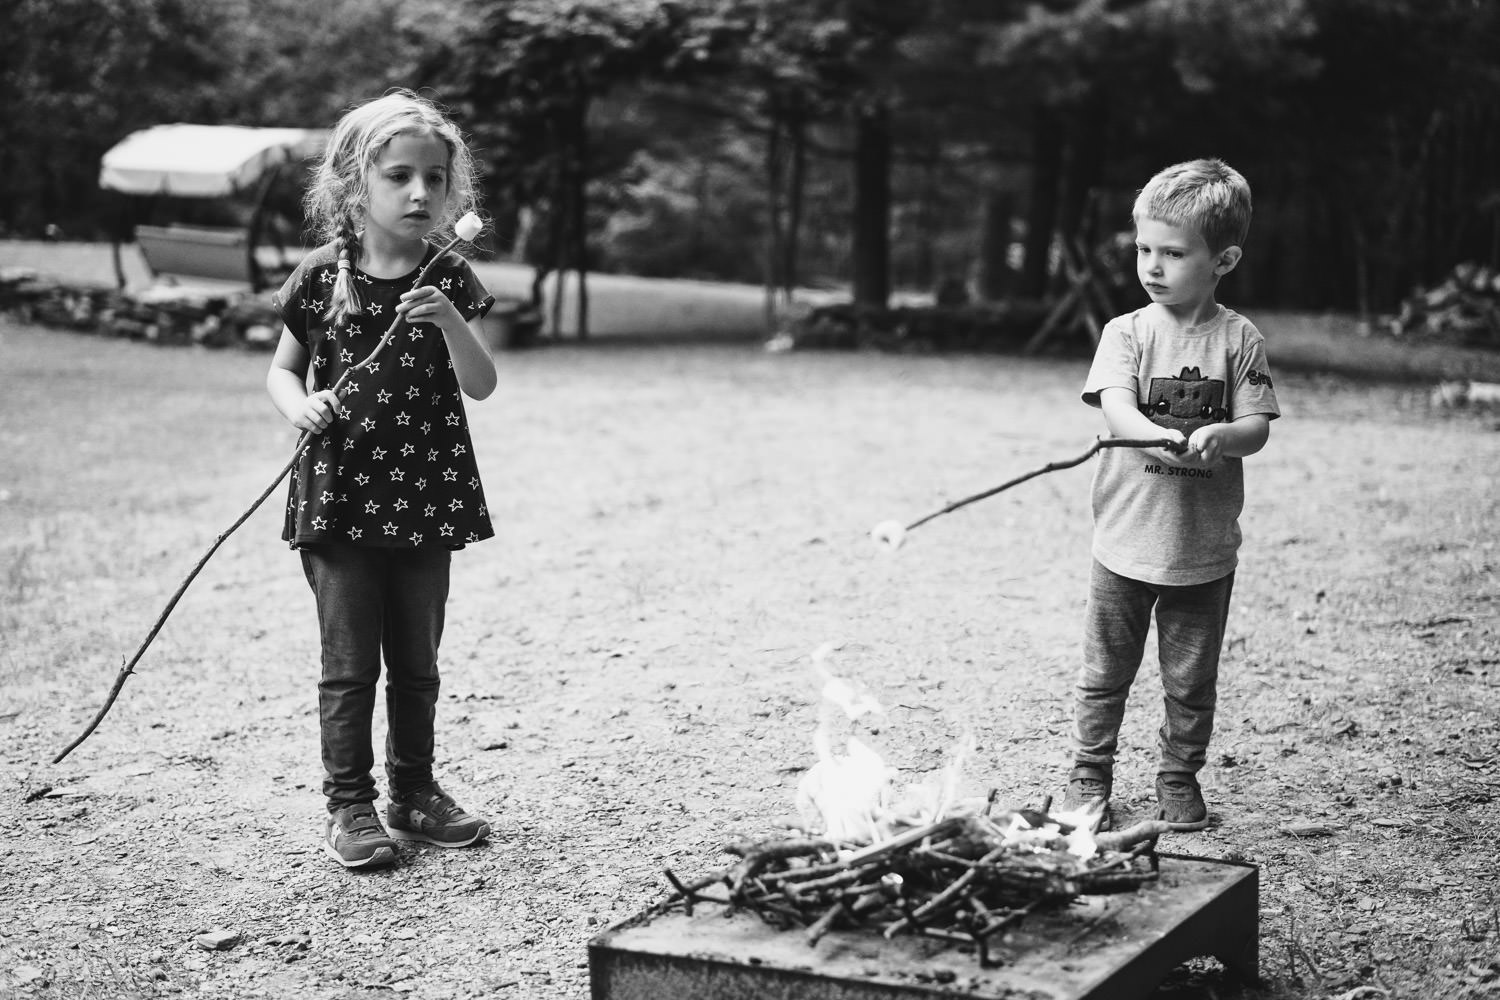 Children make s'mores.